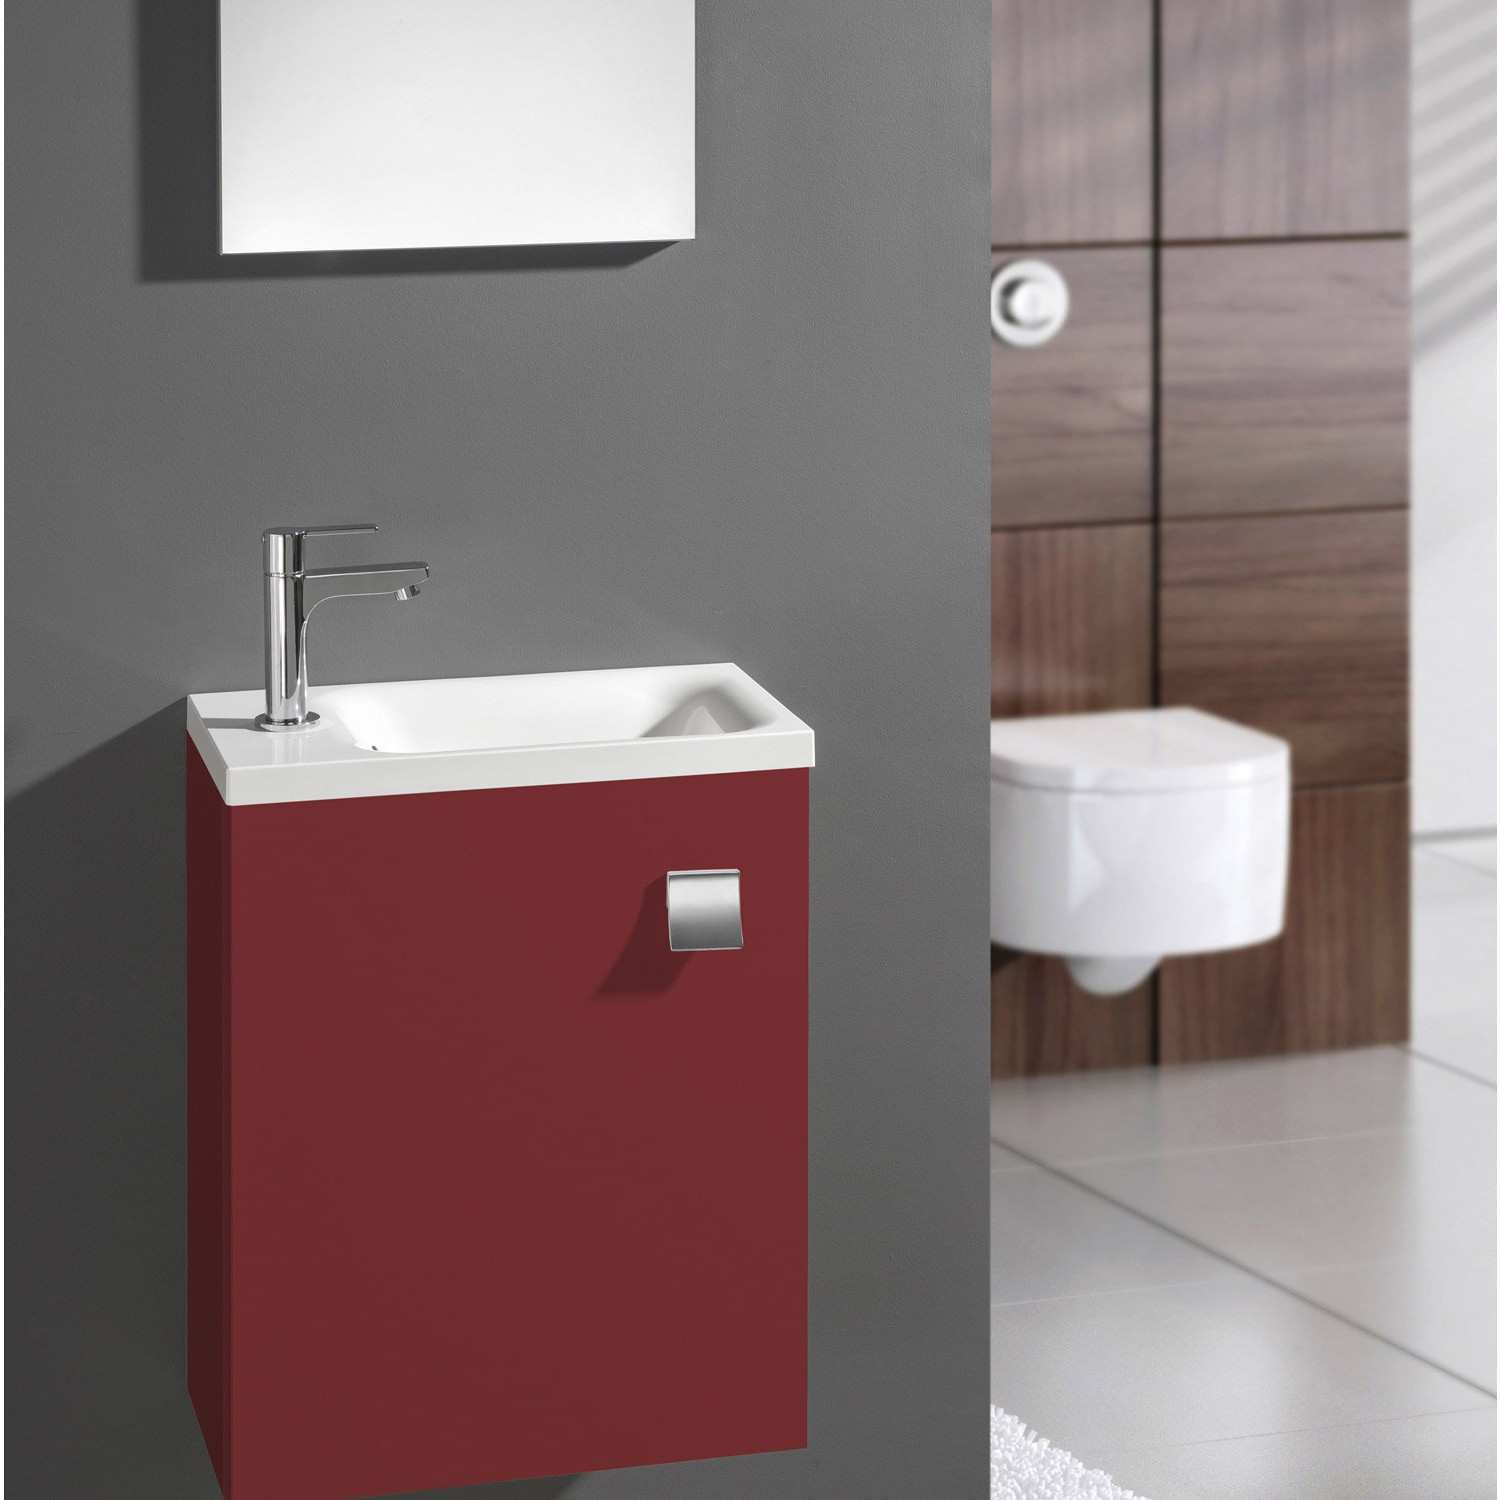 Serviteur Wc Ikea Beau Stock Lave Main Wc Design Amazing Cheap Fabulous Kreativ Wc Suspendu